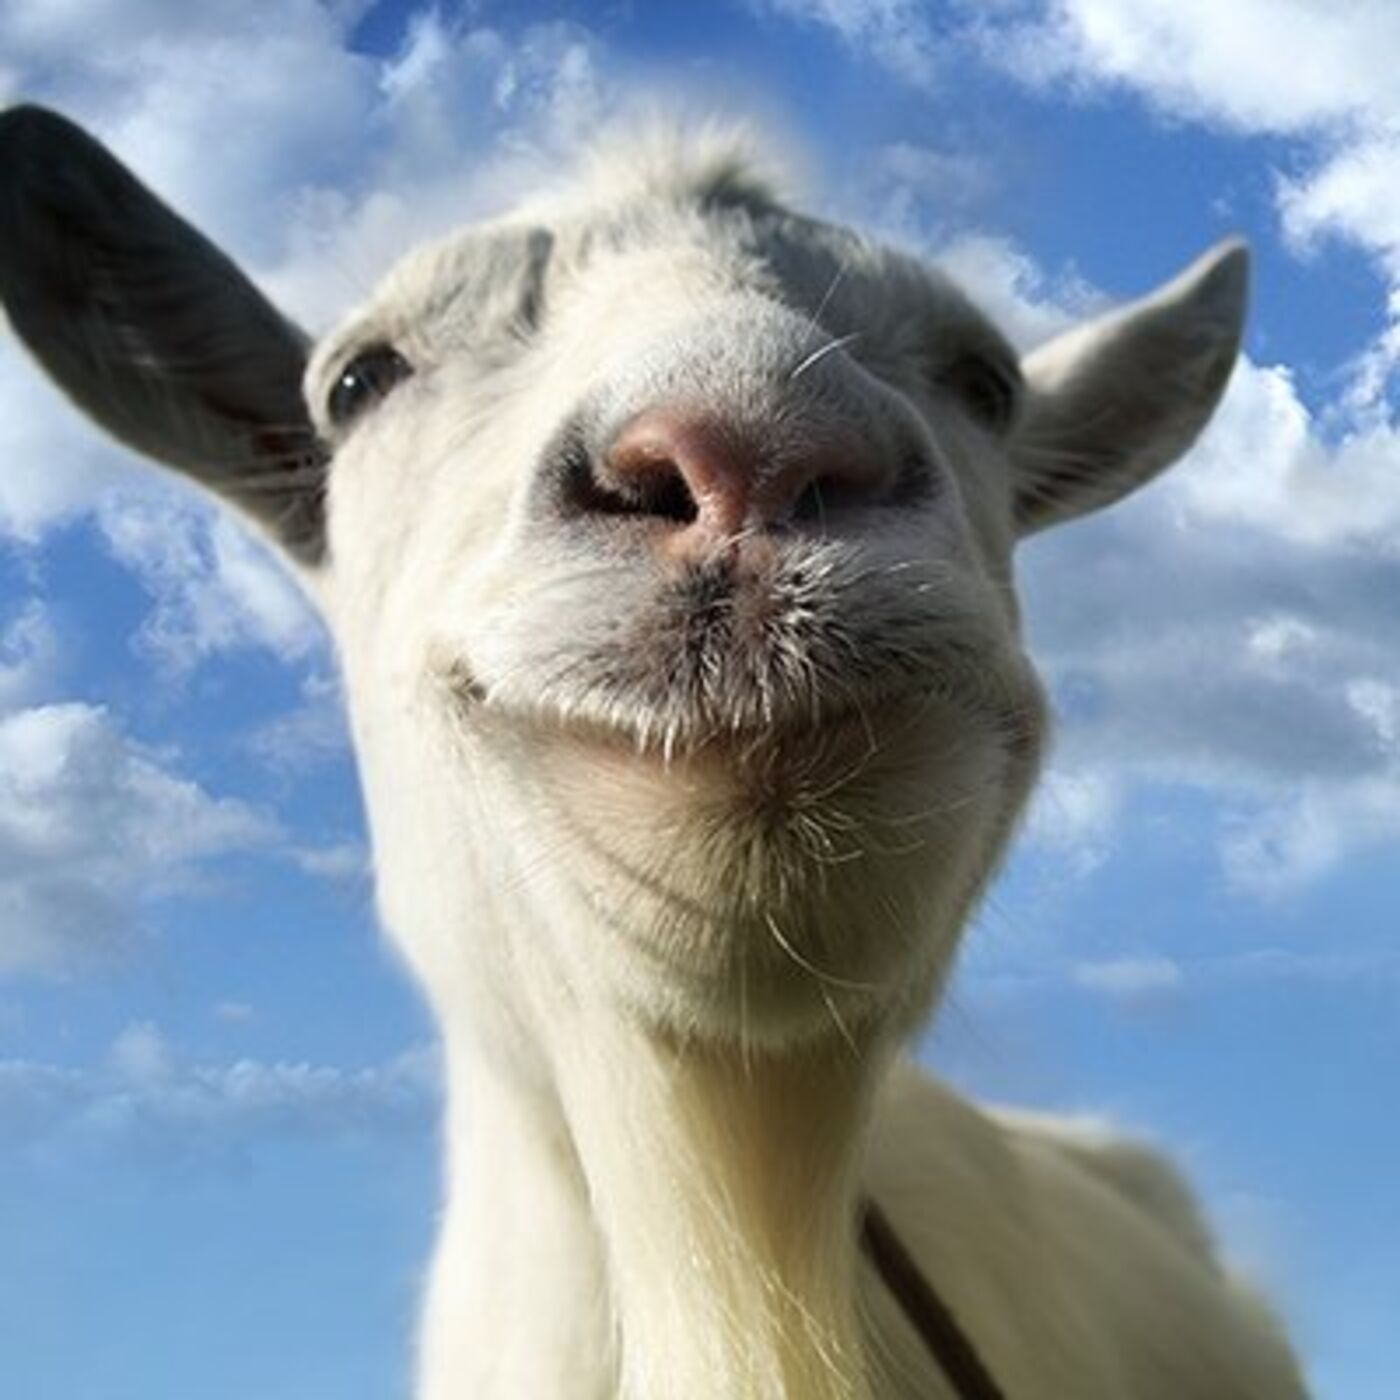 After the Meme is Gone: Playing Goat Simulator in the Year 2020